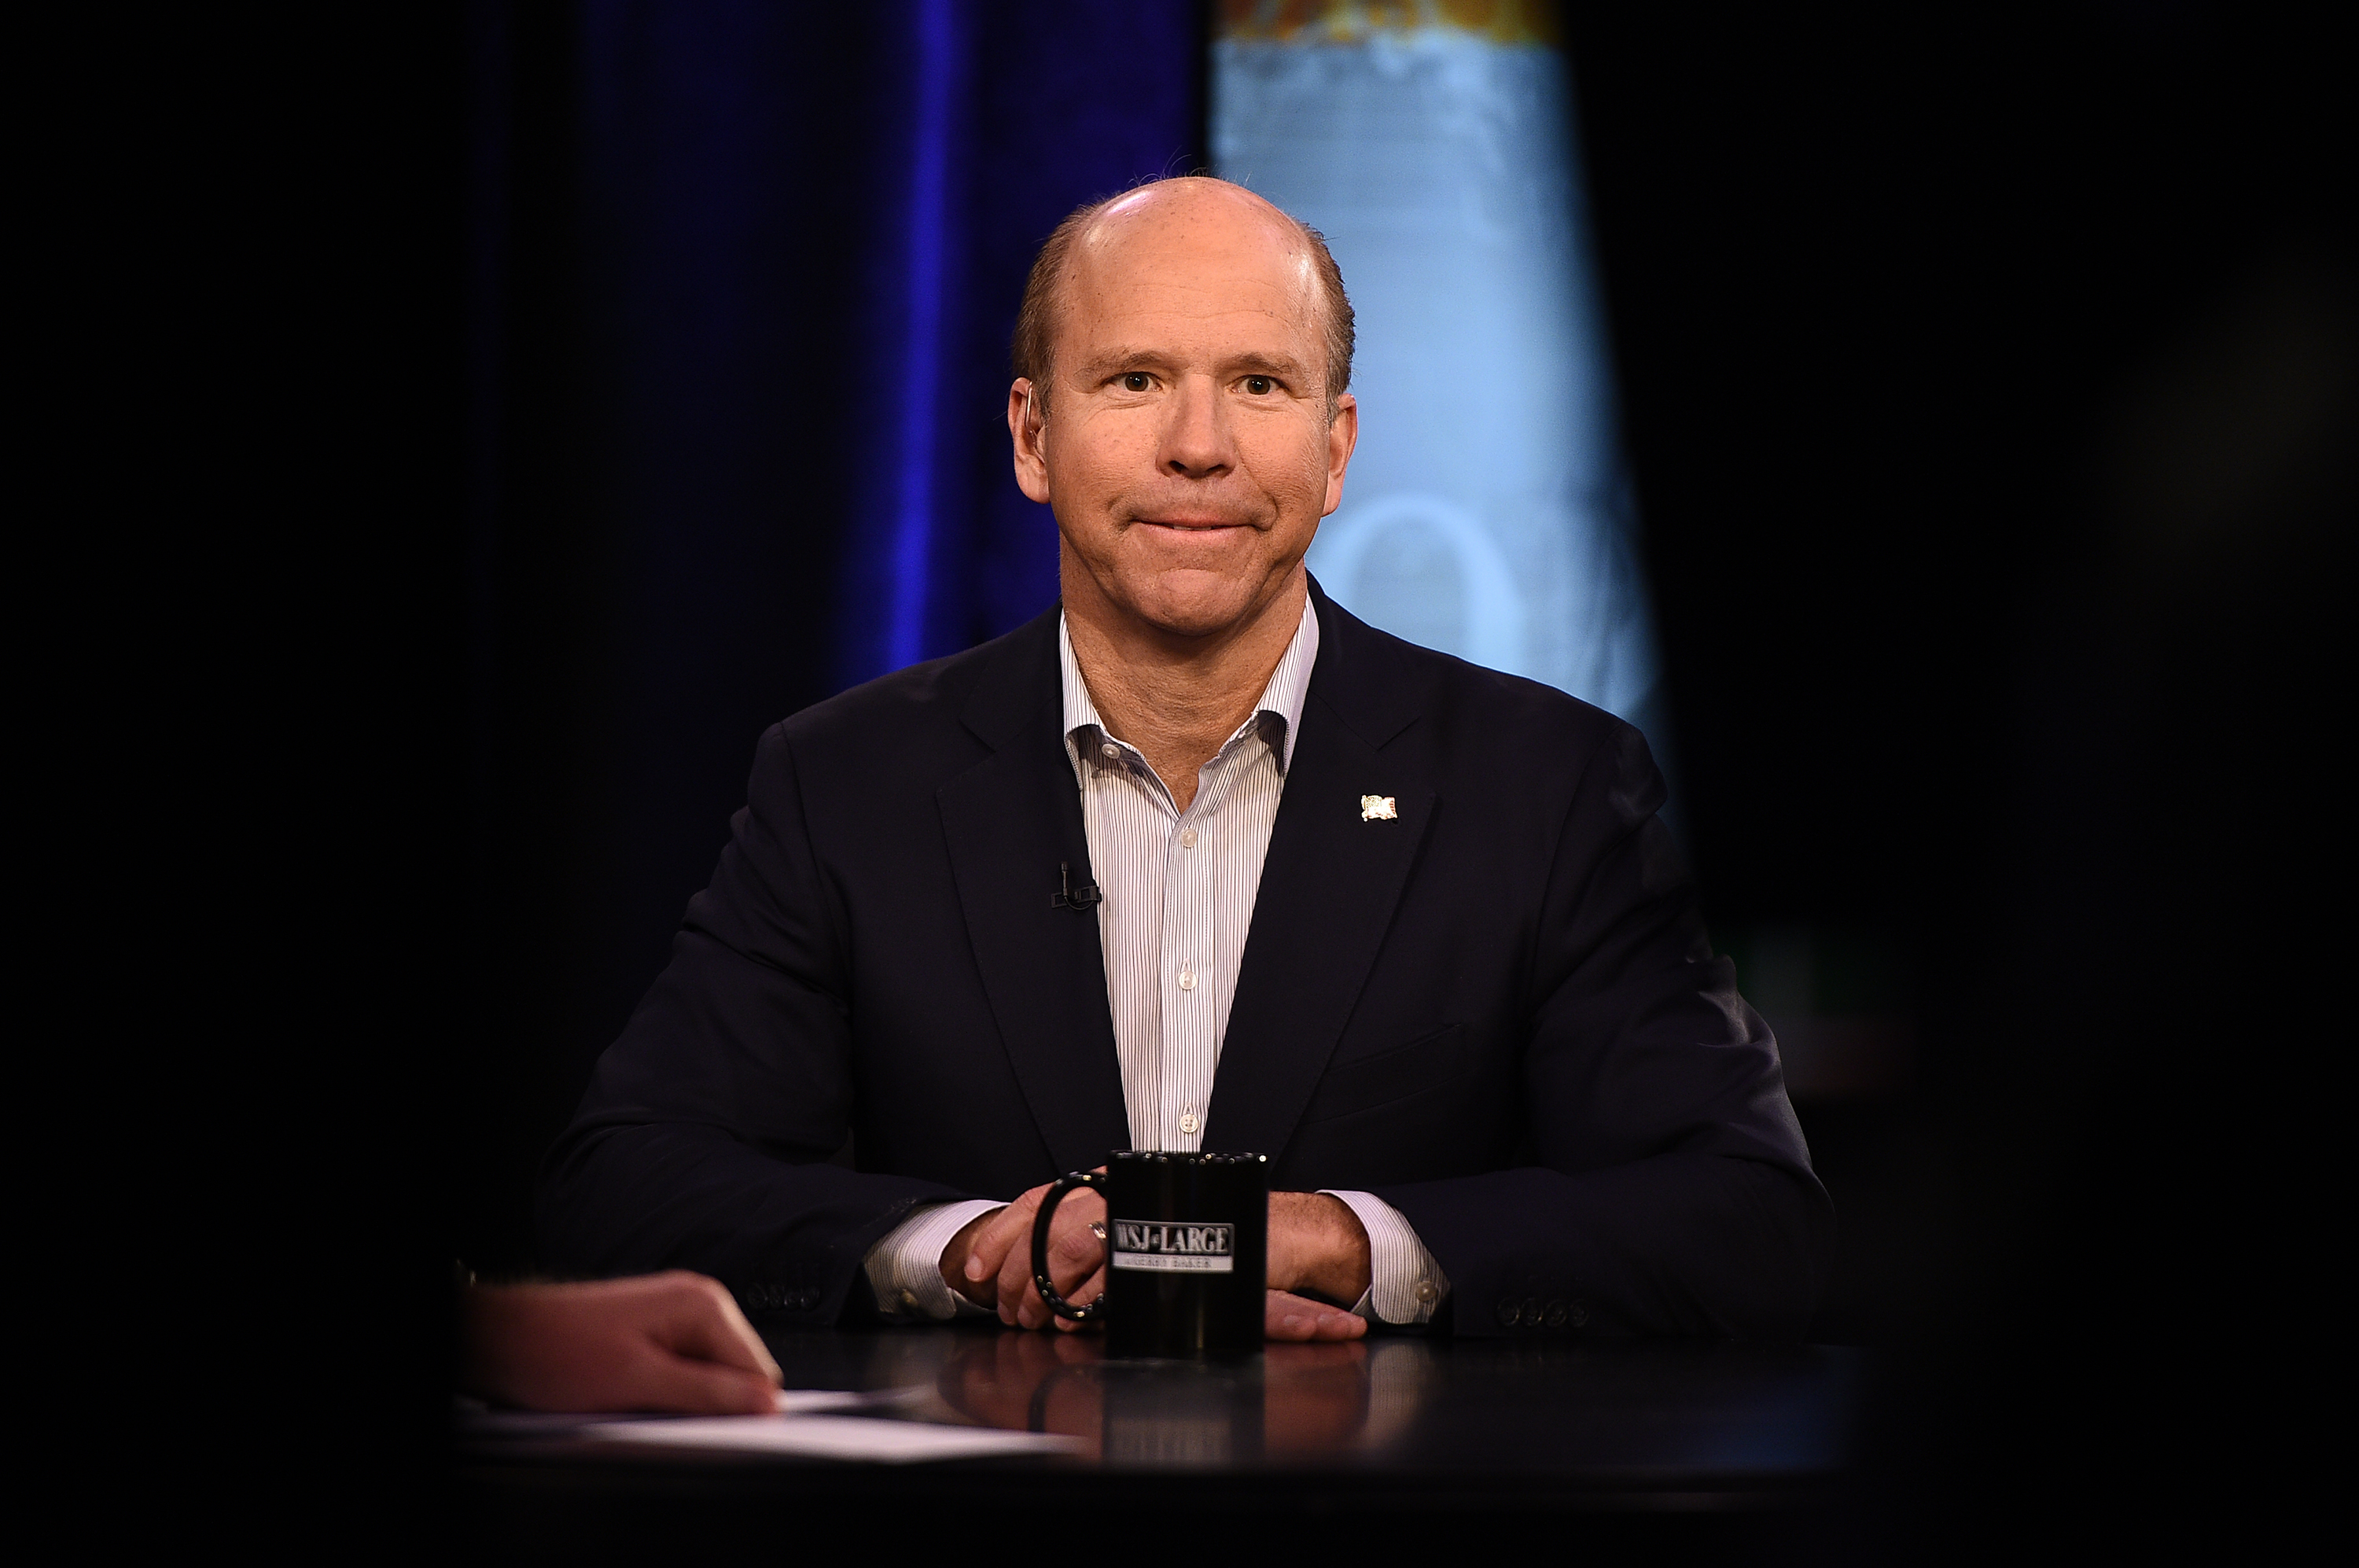 Presidential candidate John Delaney attends a taping of  WSJ At Large with Gerry Baker  (which will air Friday, March 29th) at Fox Business Network Studios on March 27, 2019 in New York City.